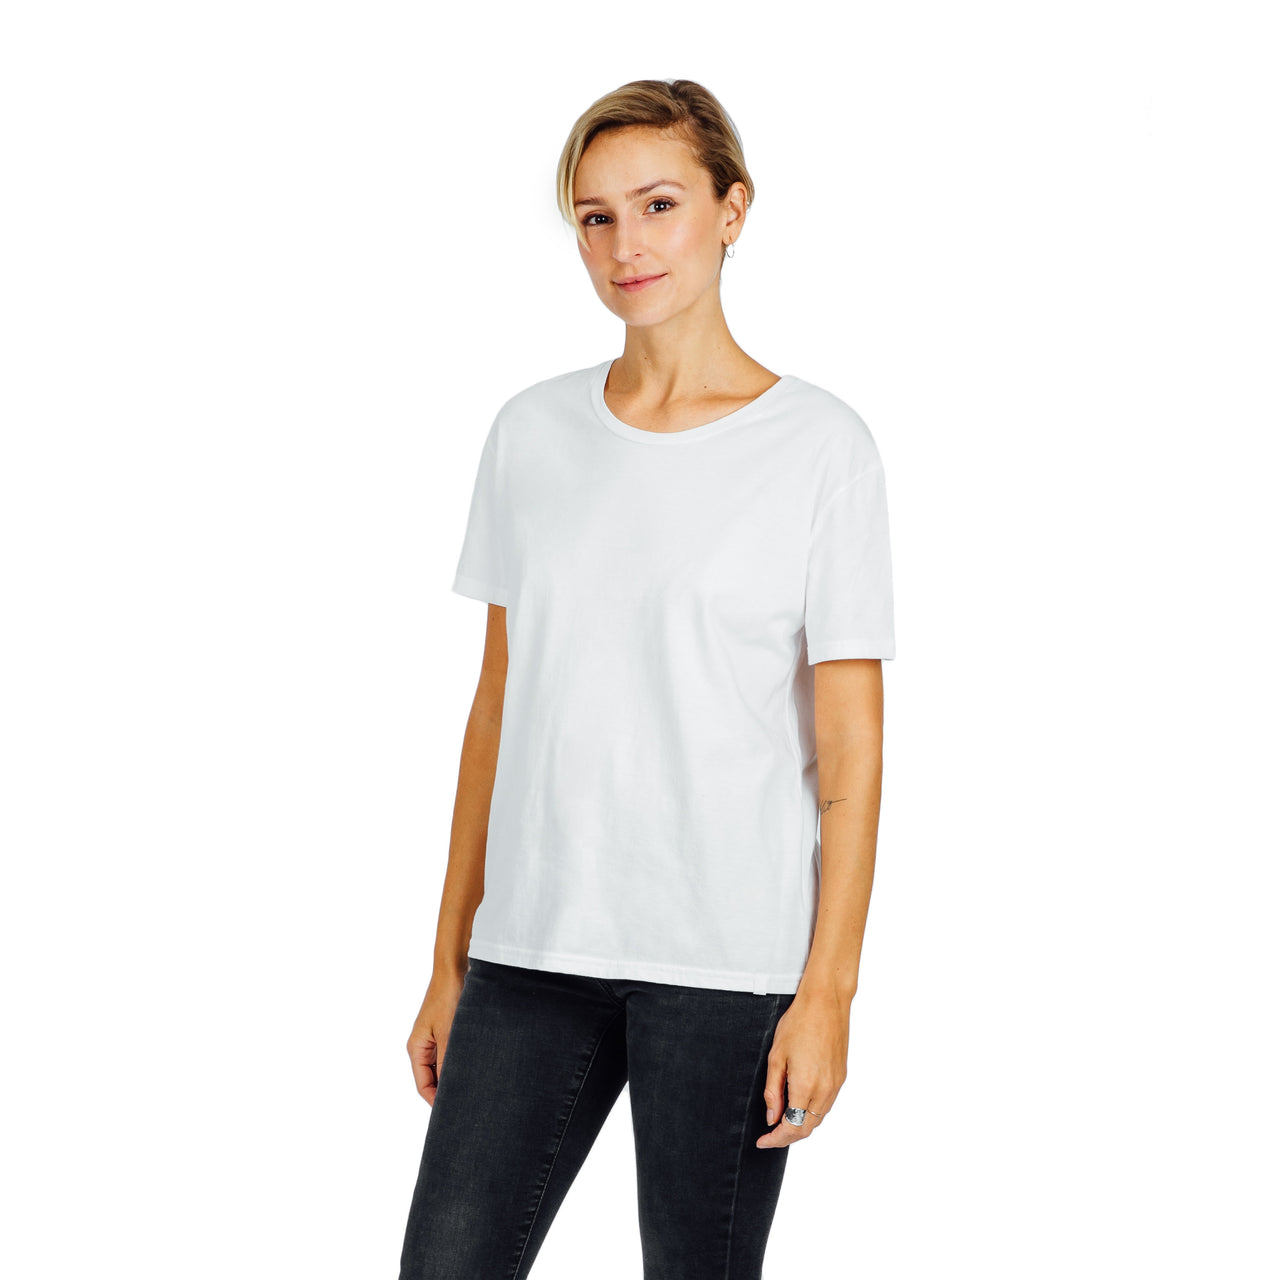 Women's Relaxed Fit Tee- White